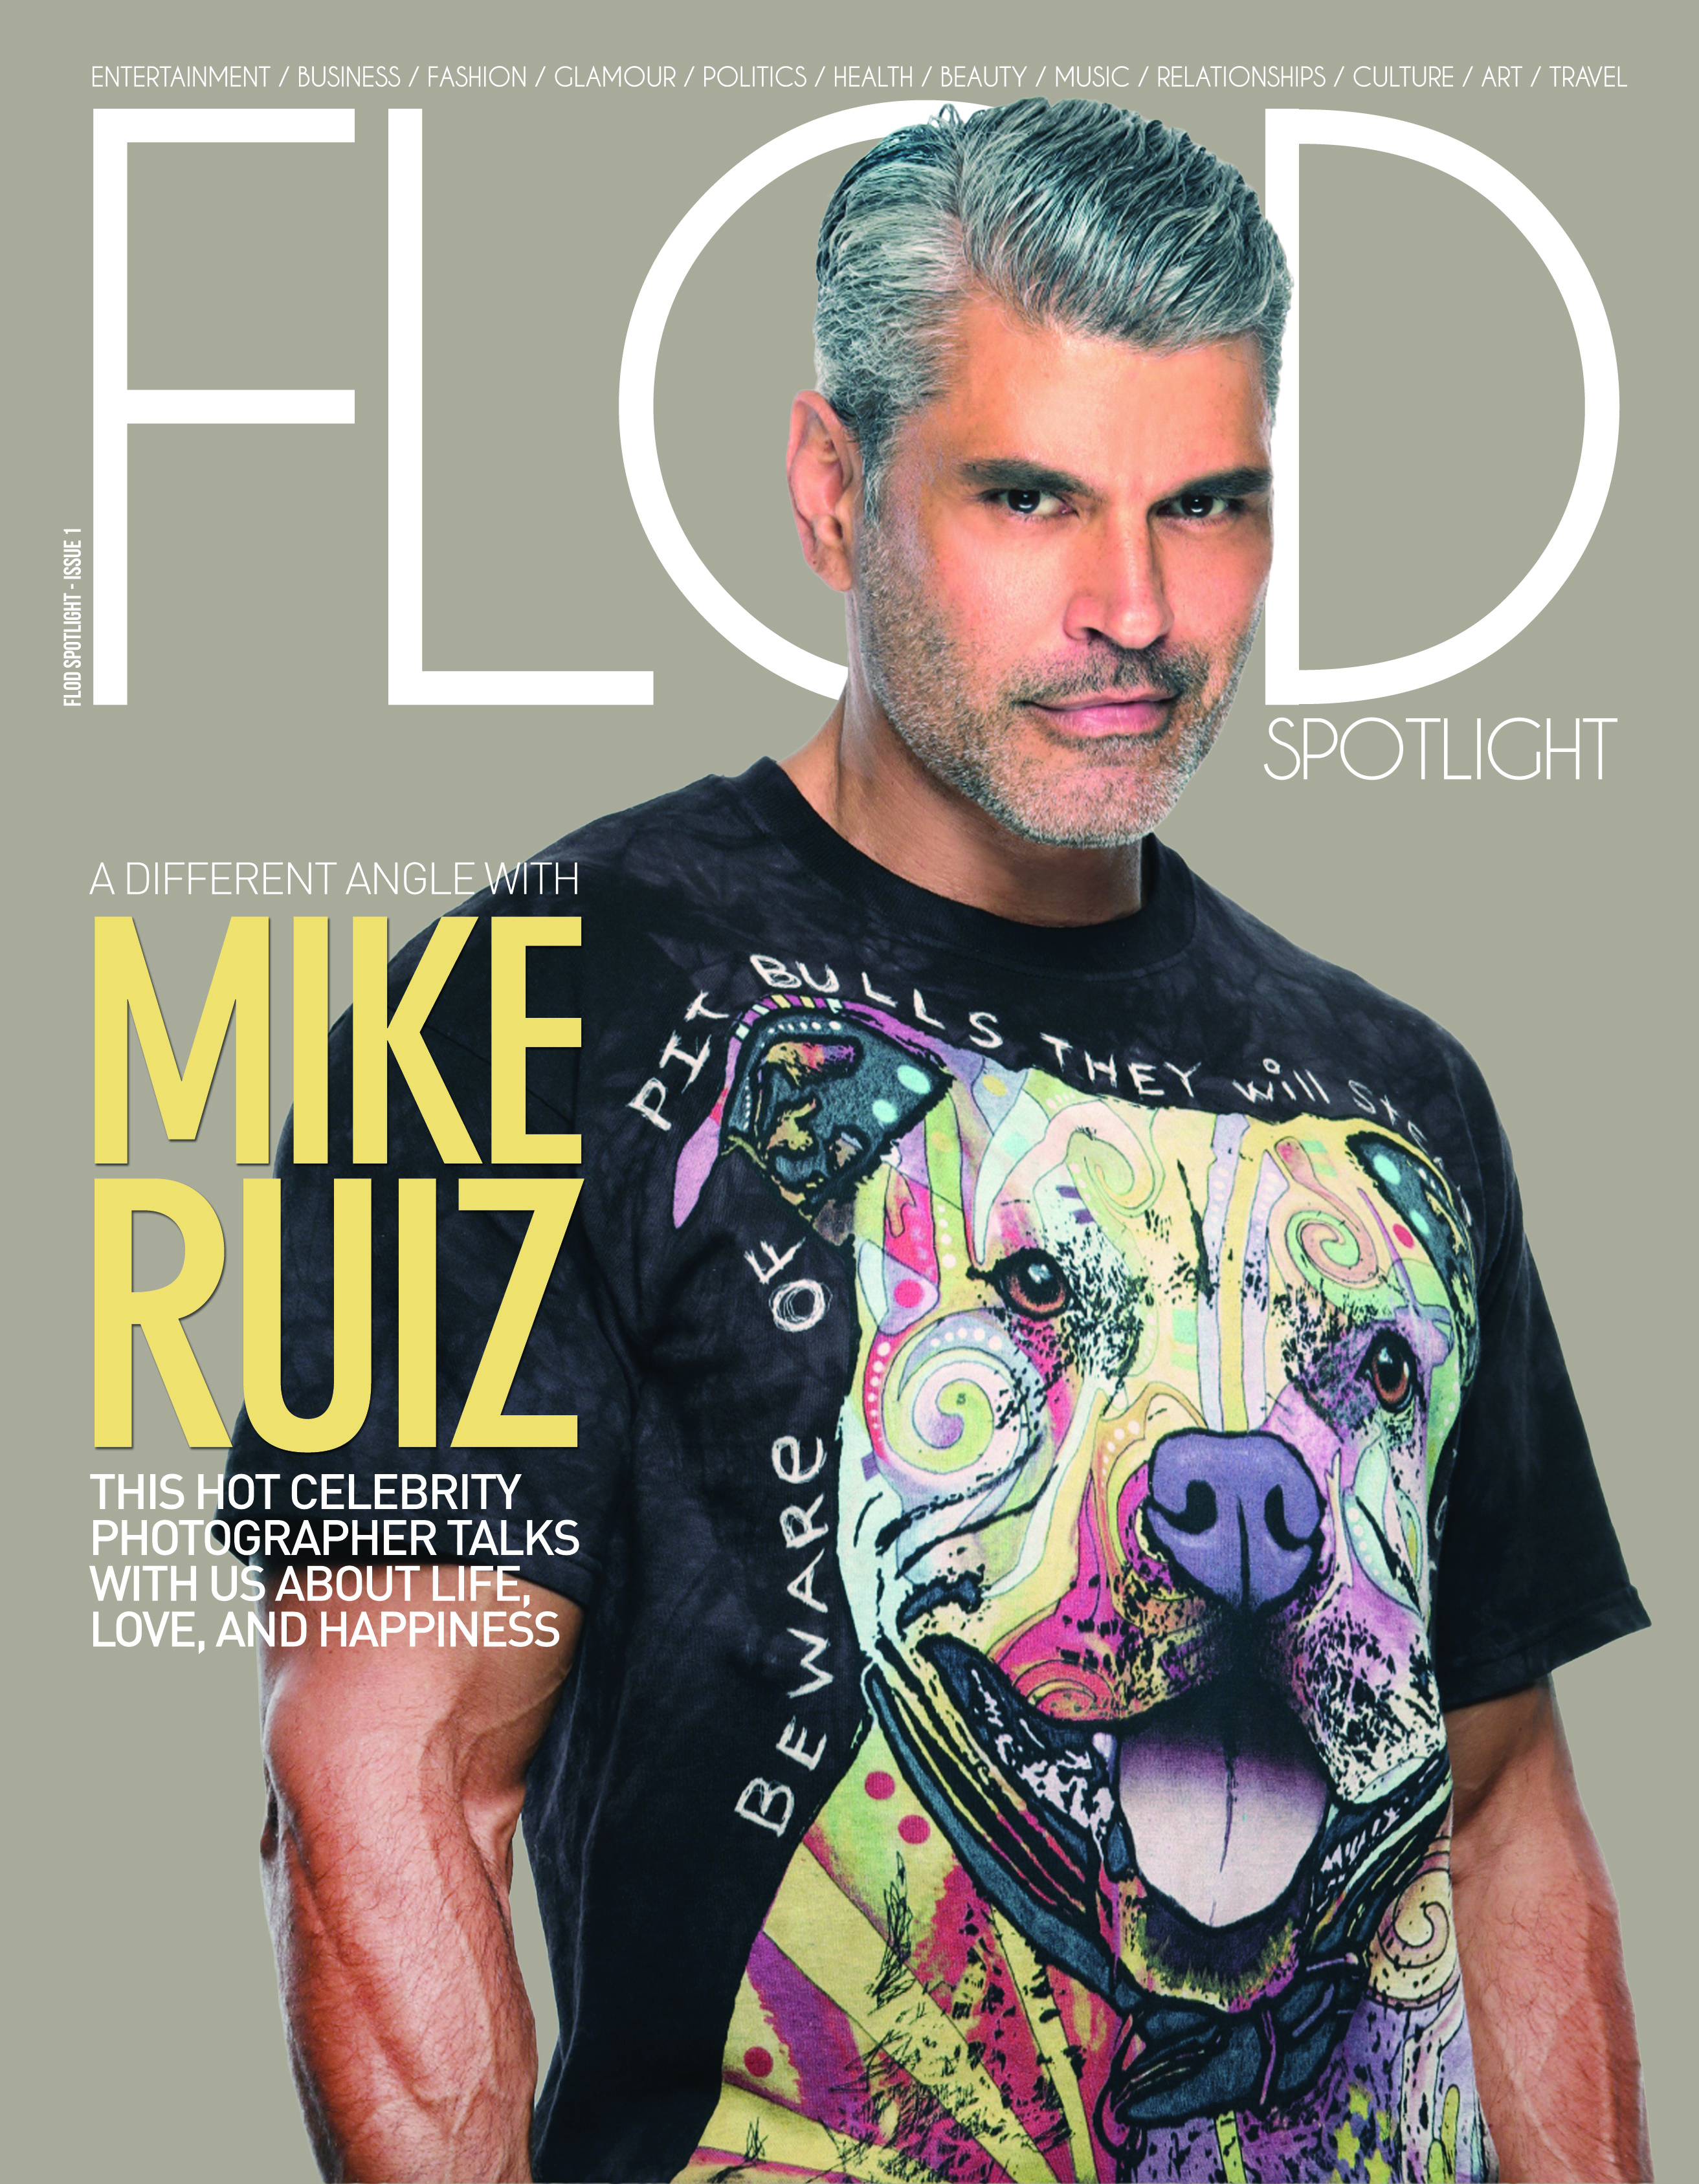 Issue 1 – A Different Angle with Mike Ruiz